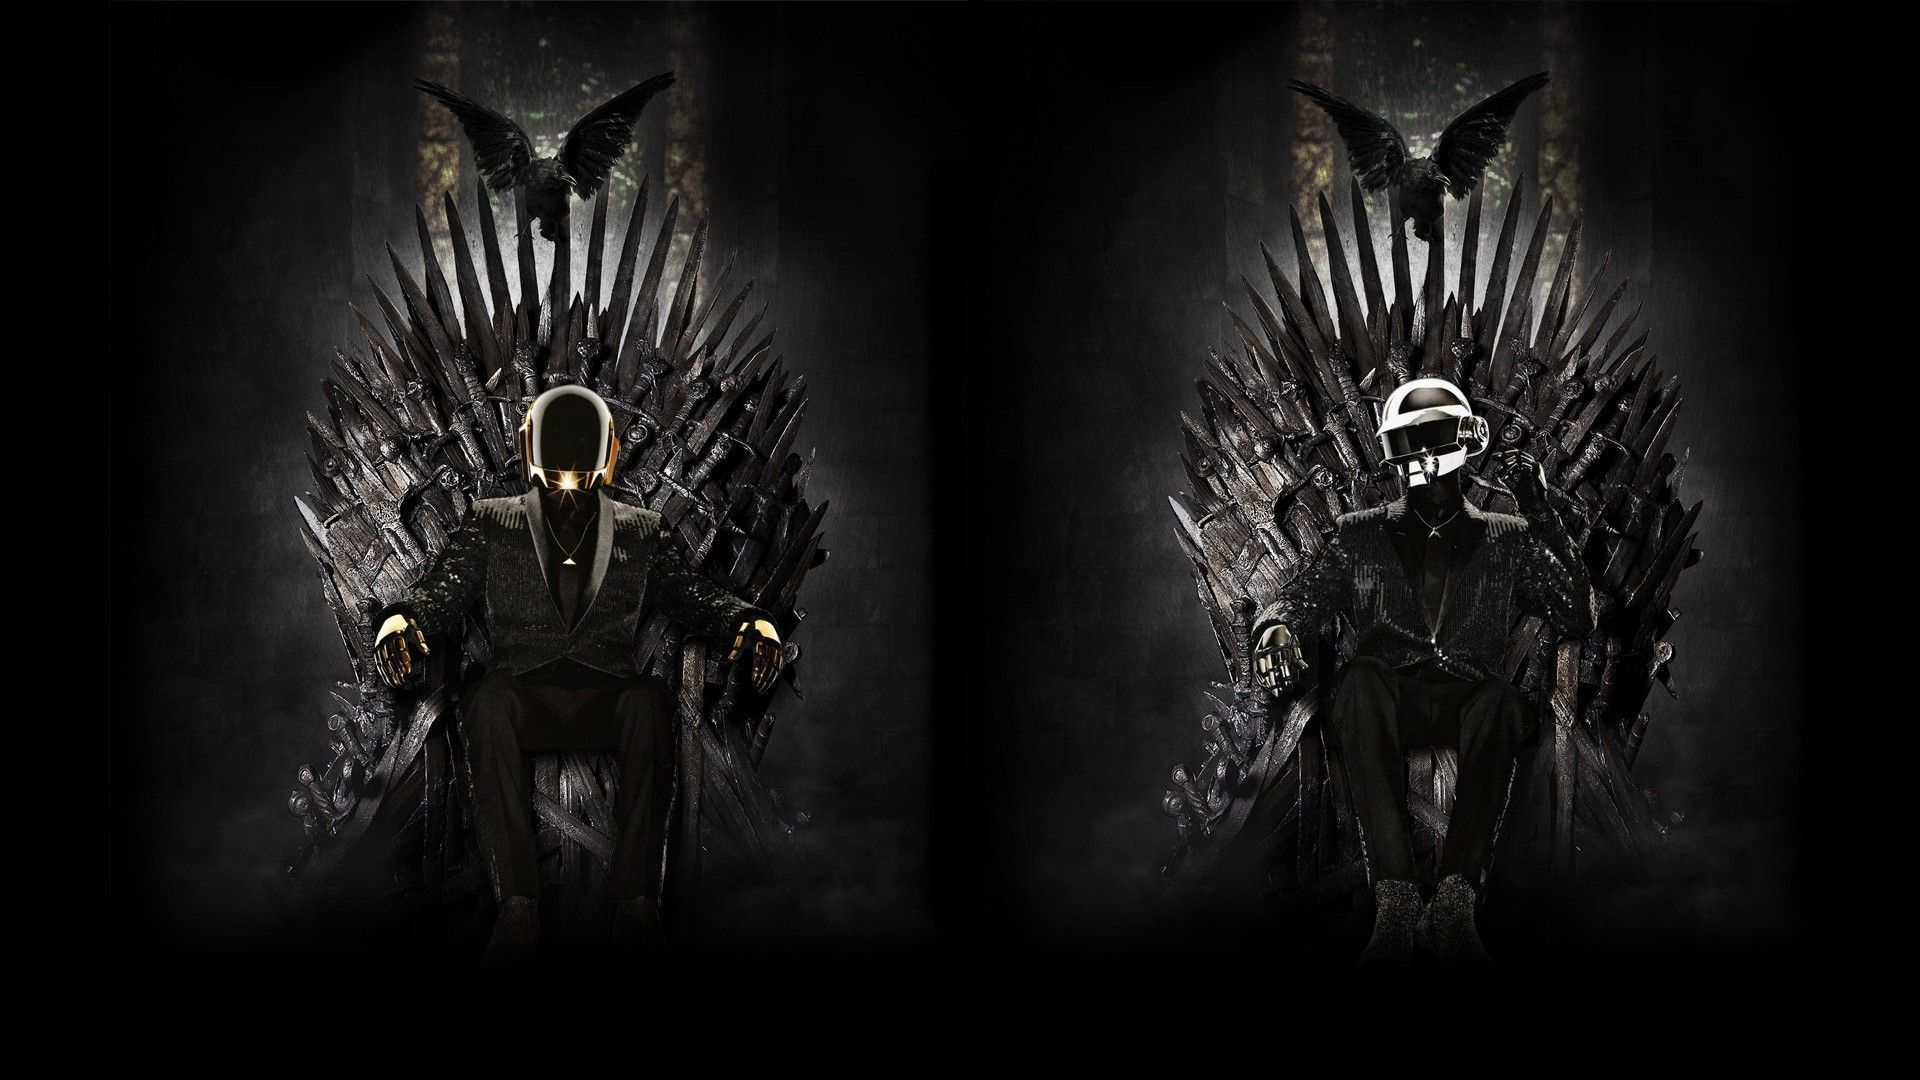 game of thrones iphone wallpaper iron throne